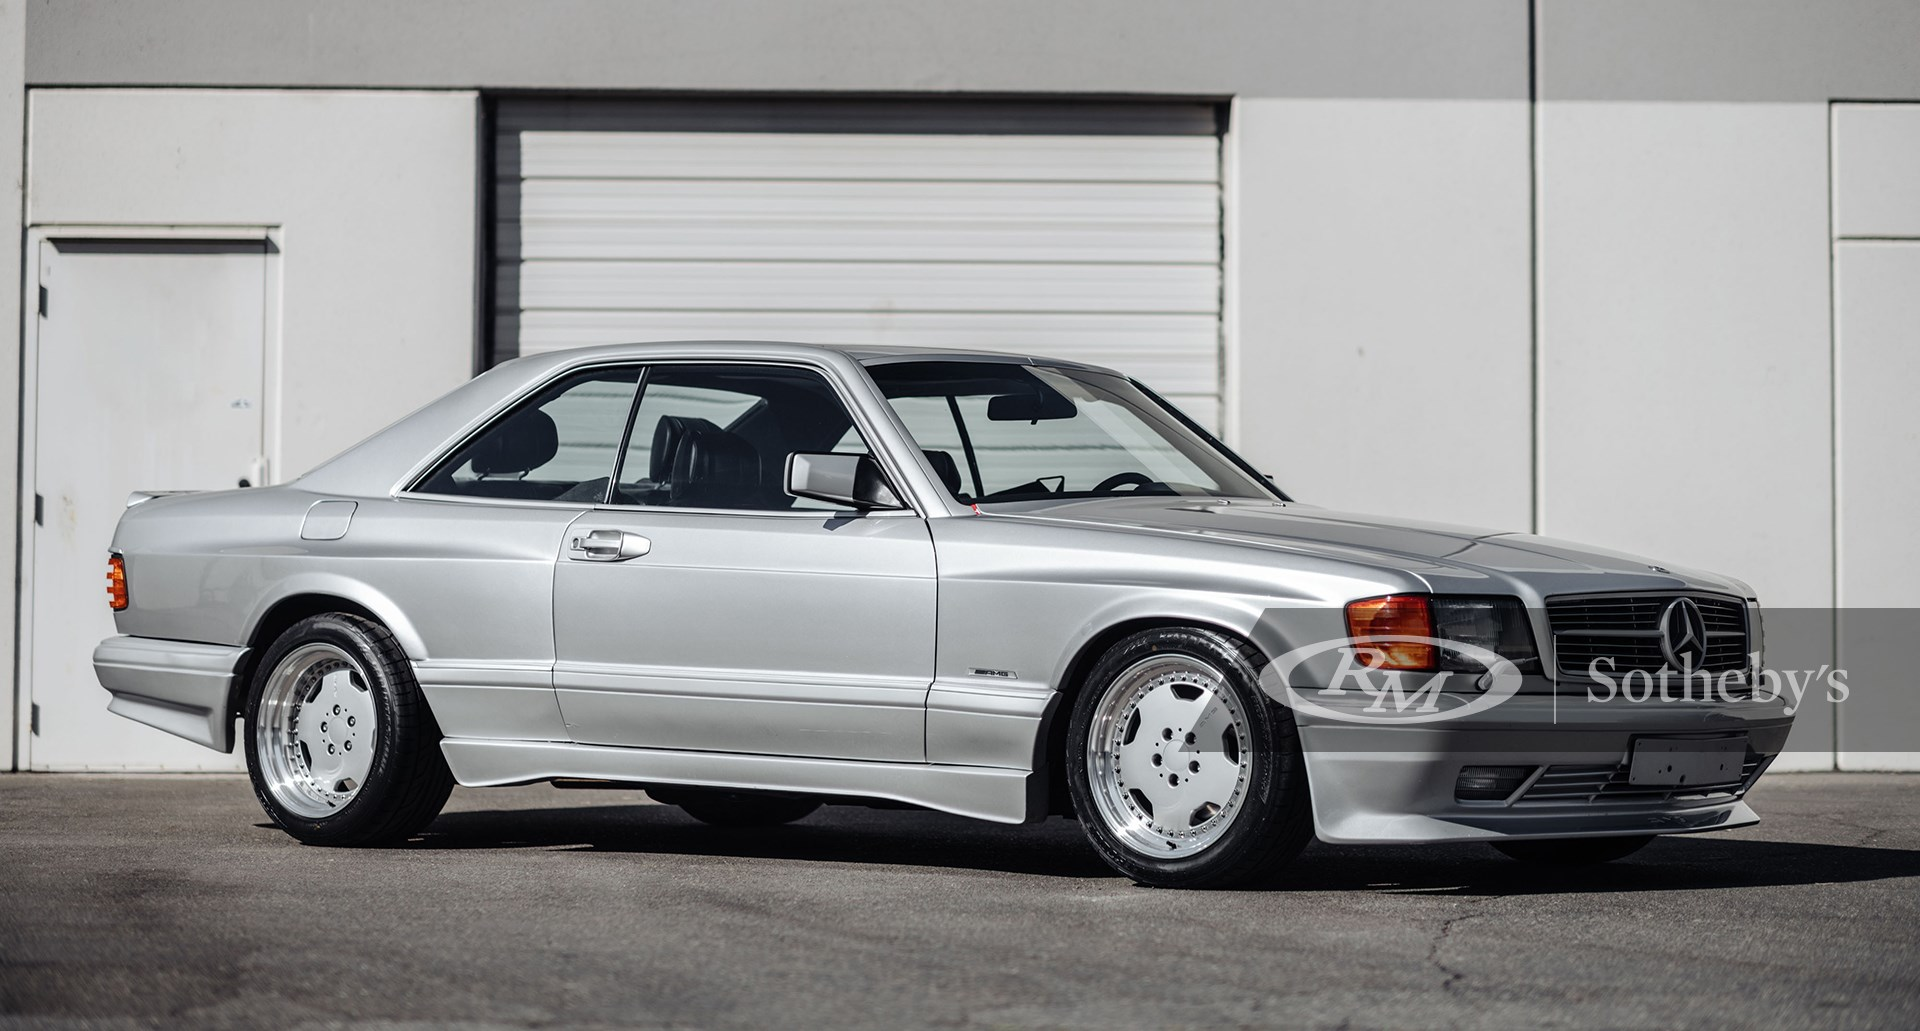 RM Sotheby's Arizona Scottsdale 2021, Blog, 1989 Mercedes-Benz 560 SEC AMG 6.0 Wide-body